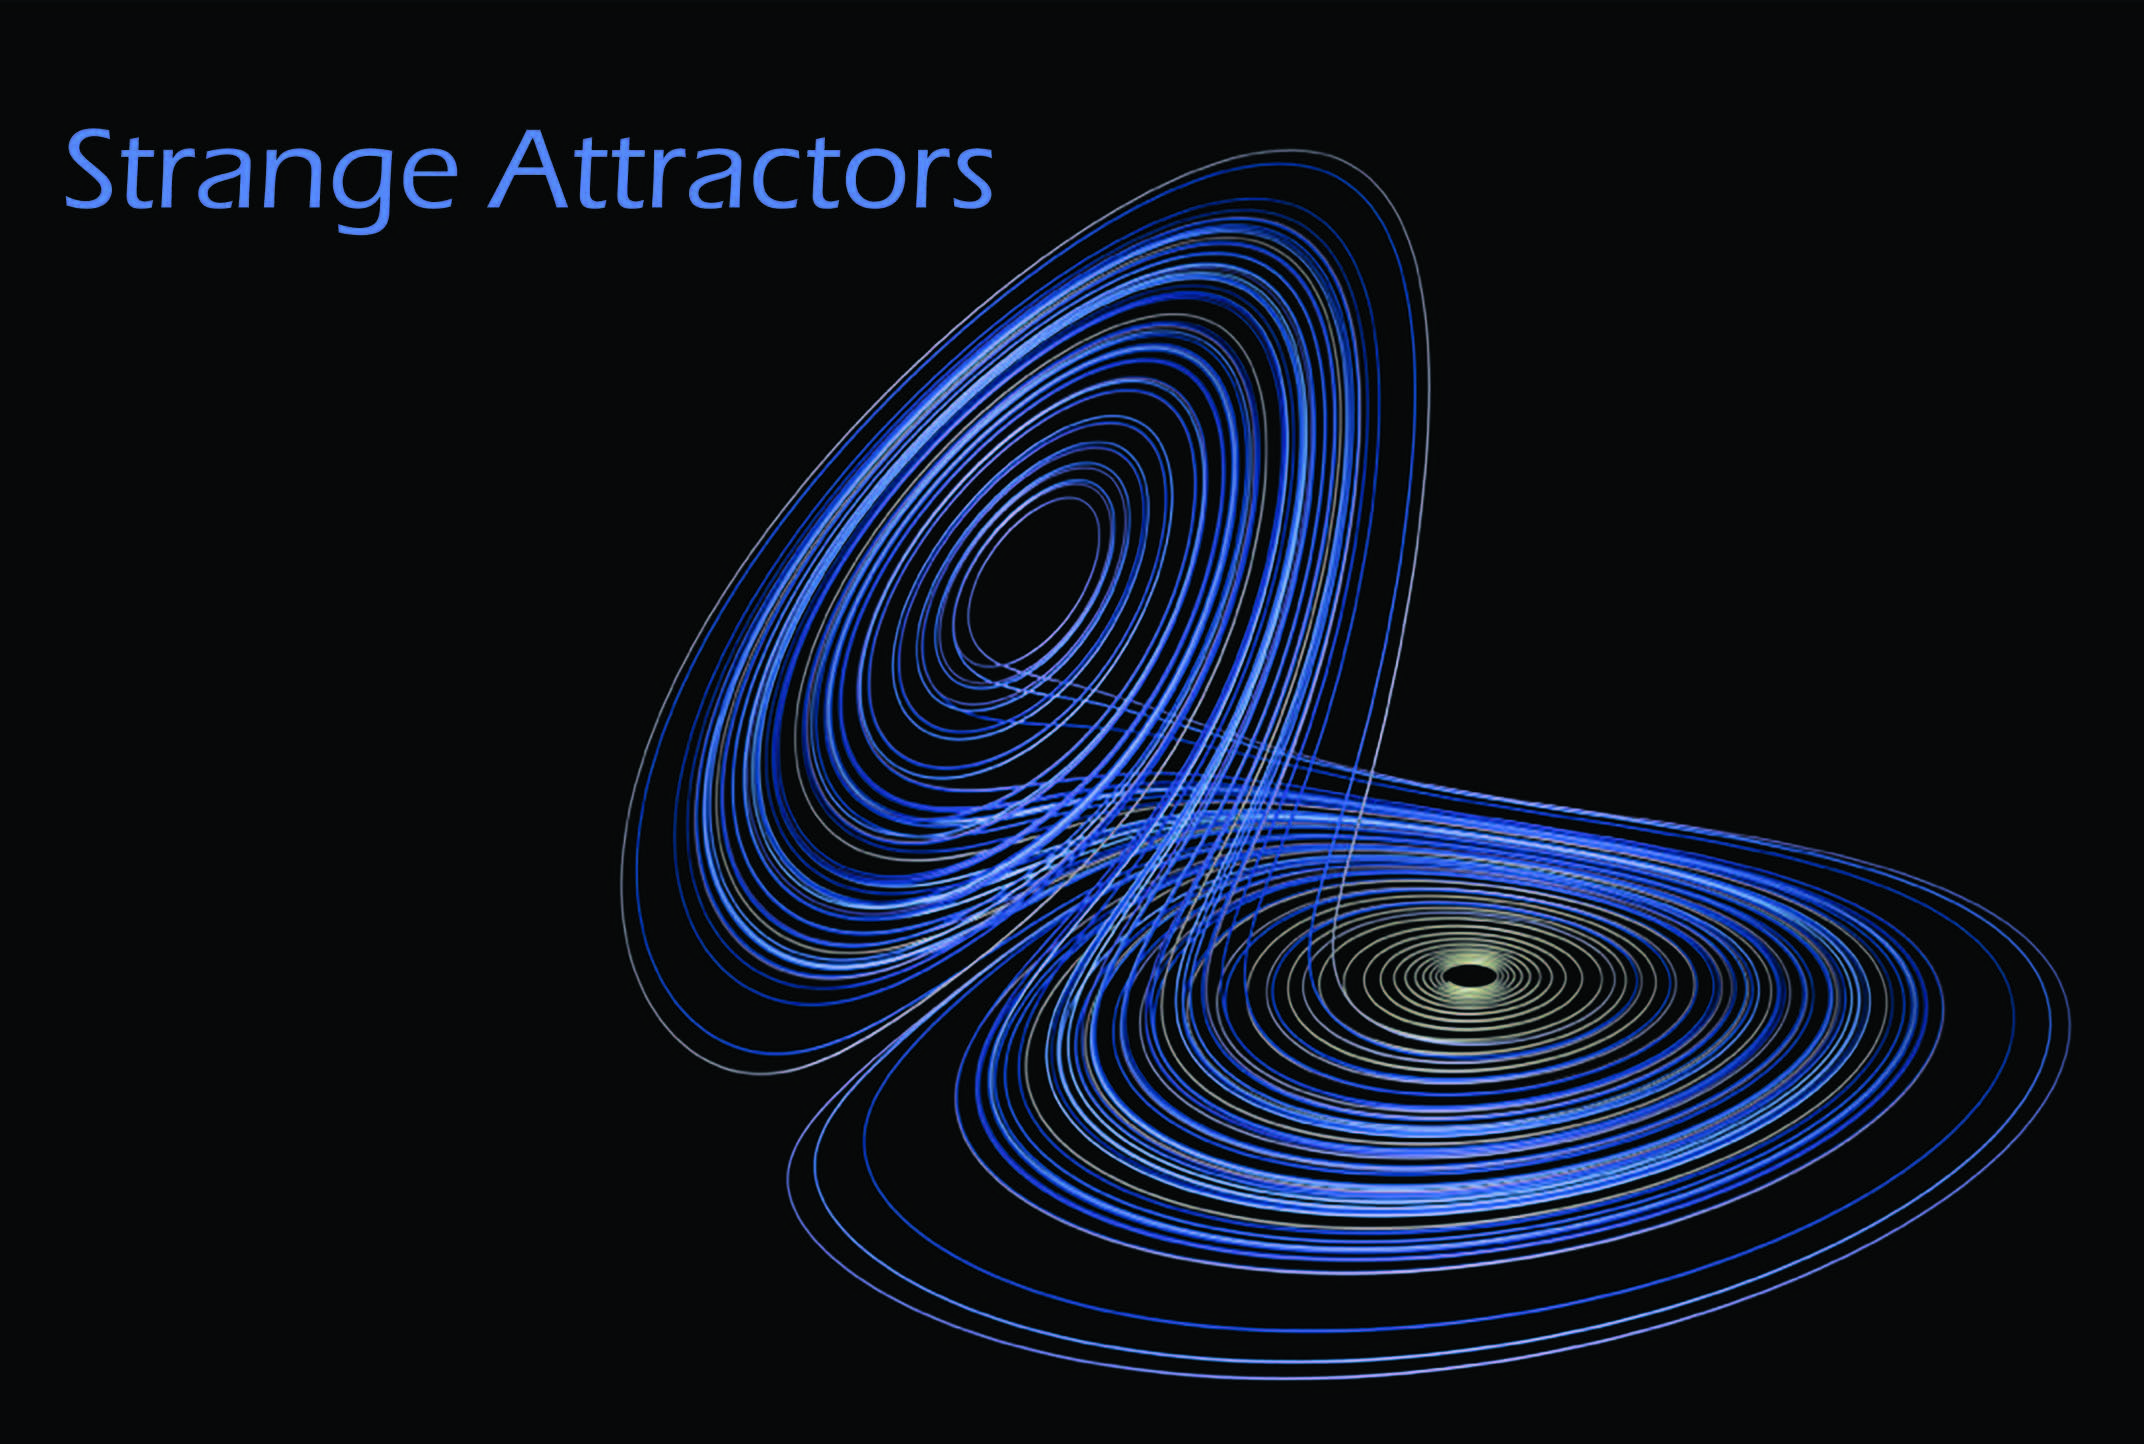 Strange Attractors Postcard